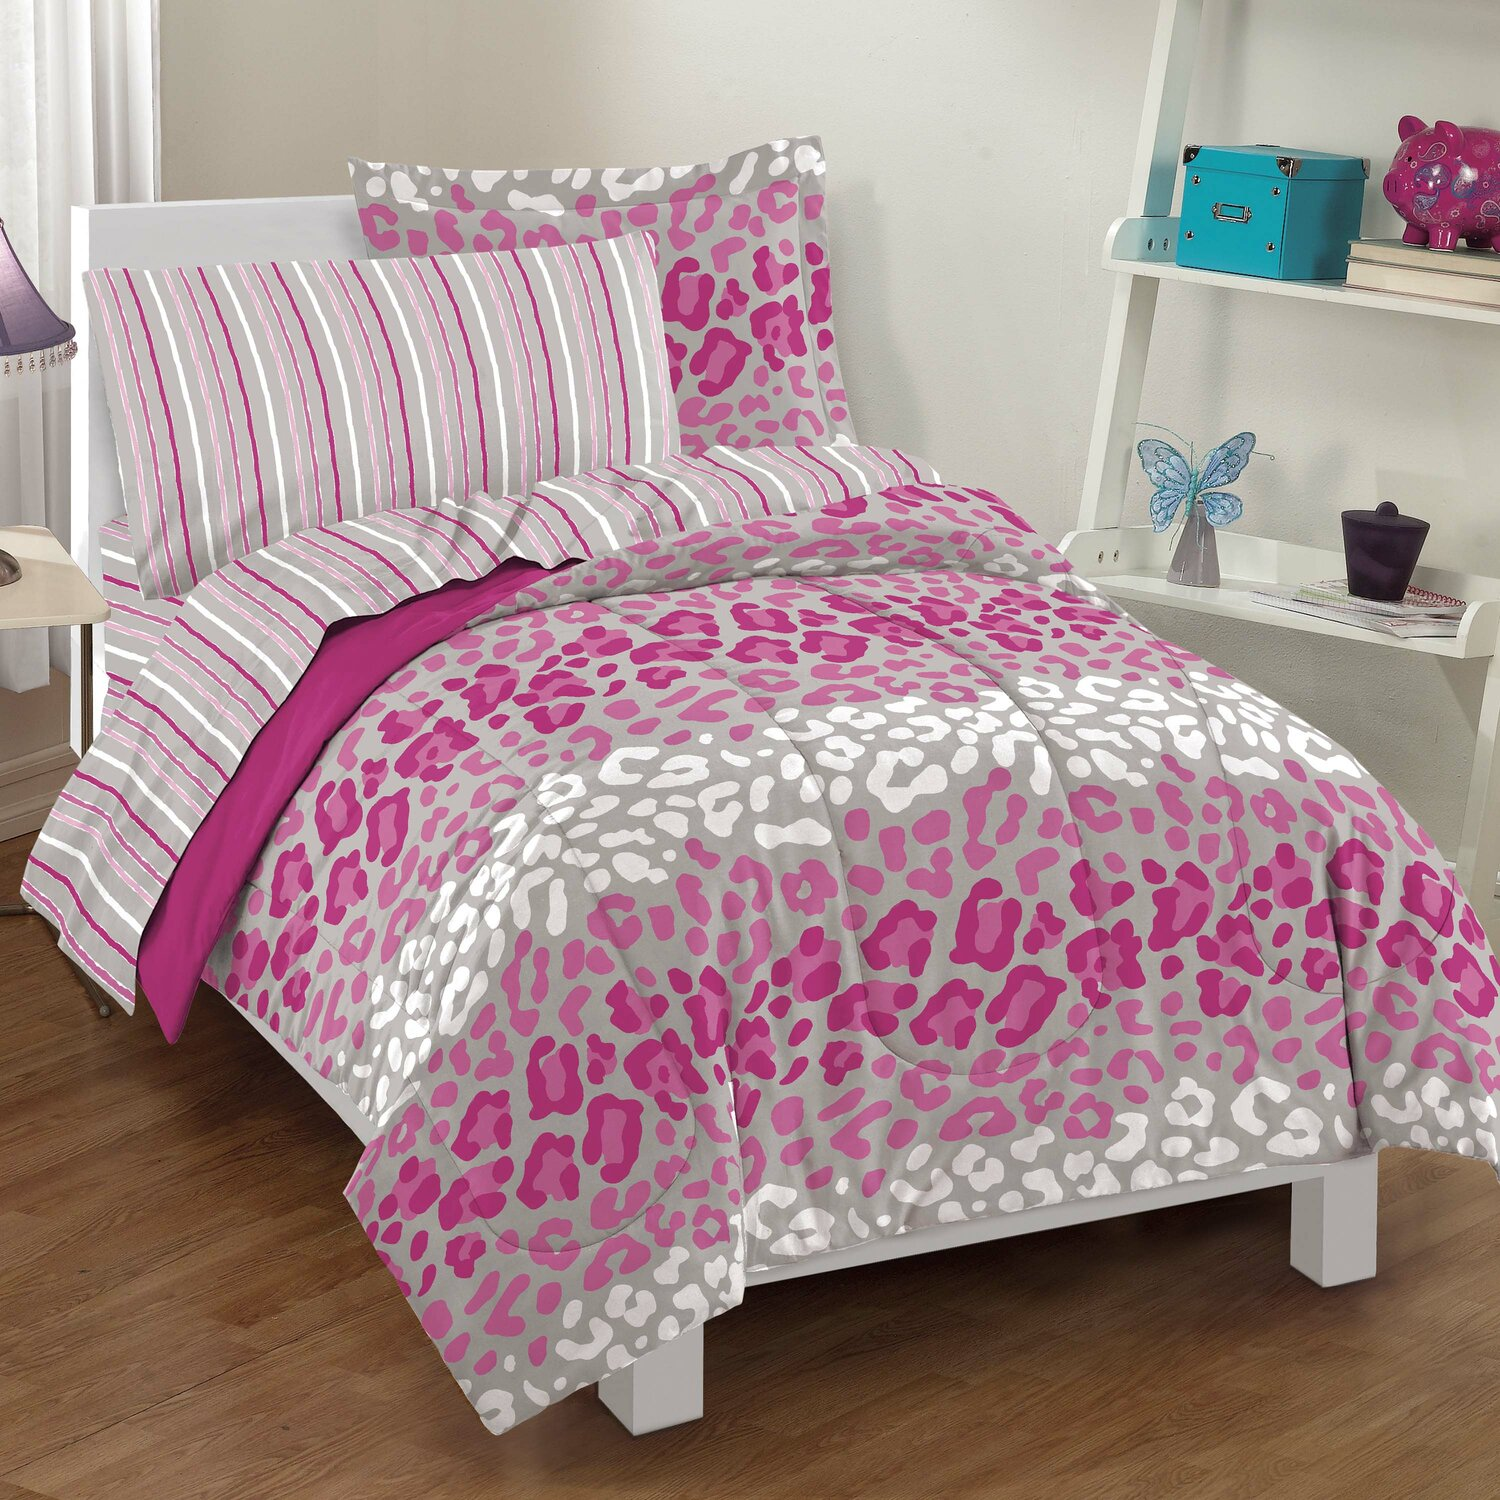 girl unicorn print bed ixlib single small main bedding bedroom sets duvet toddler matalan king cover homeware rails double covers